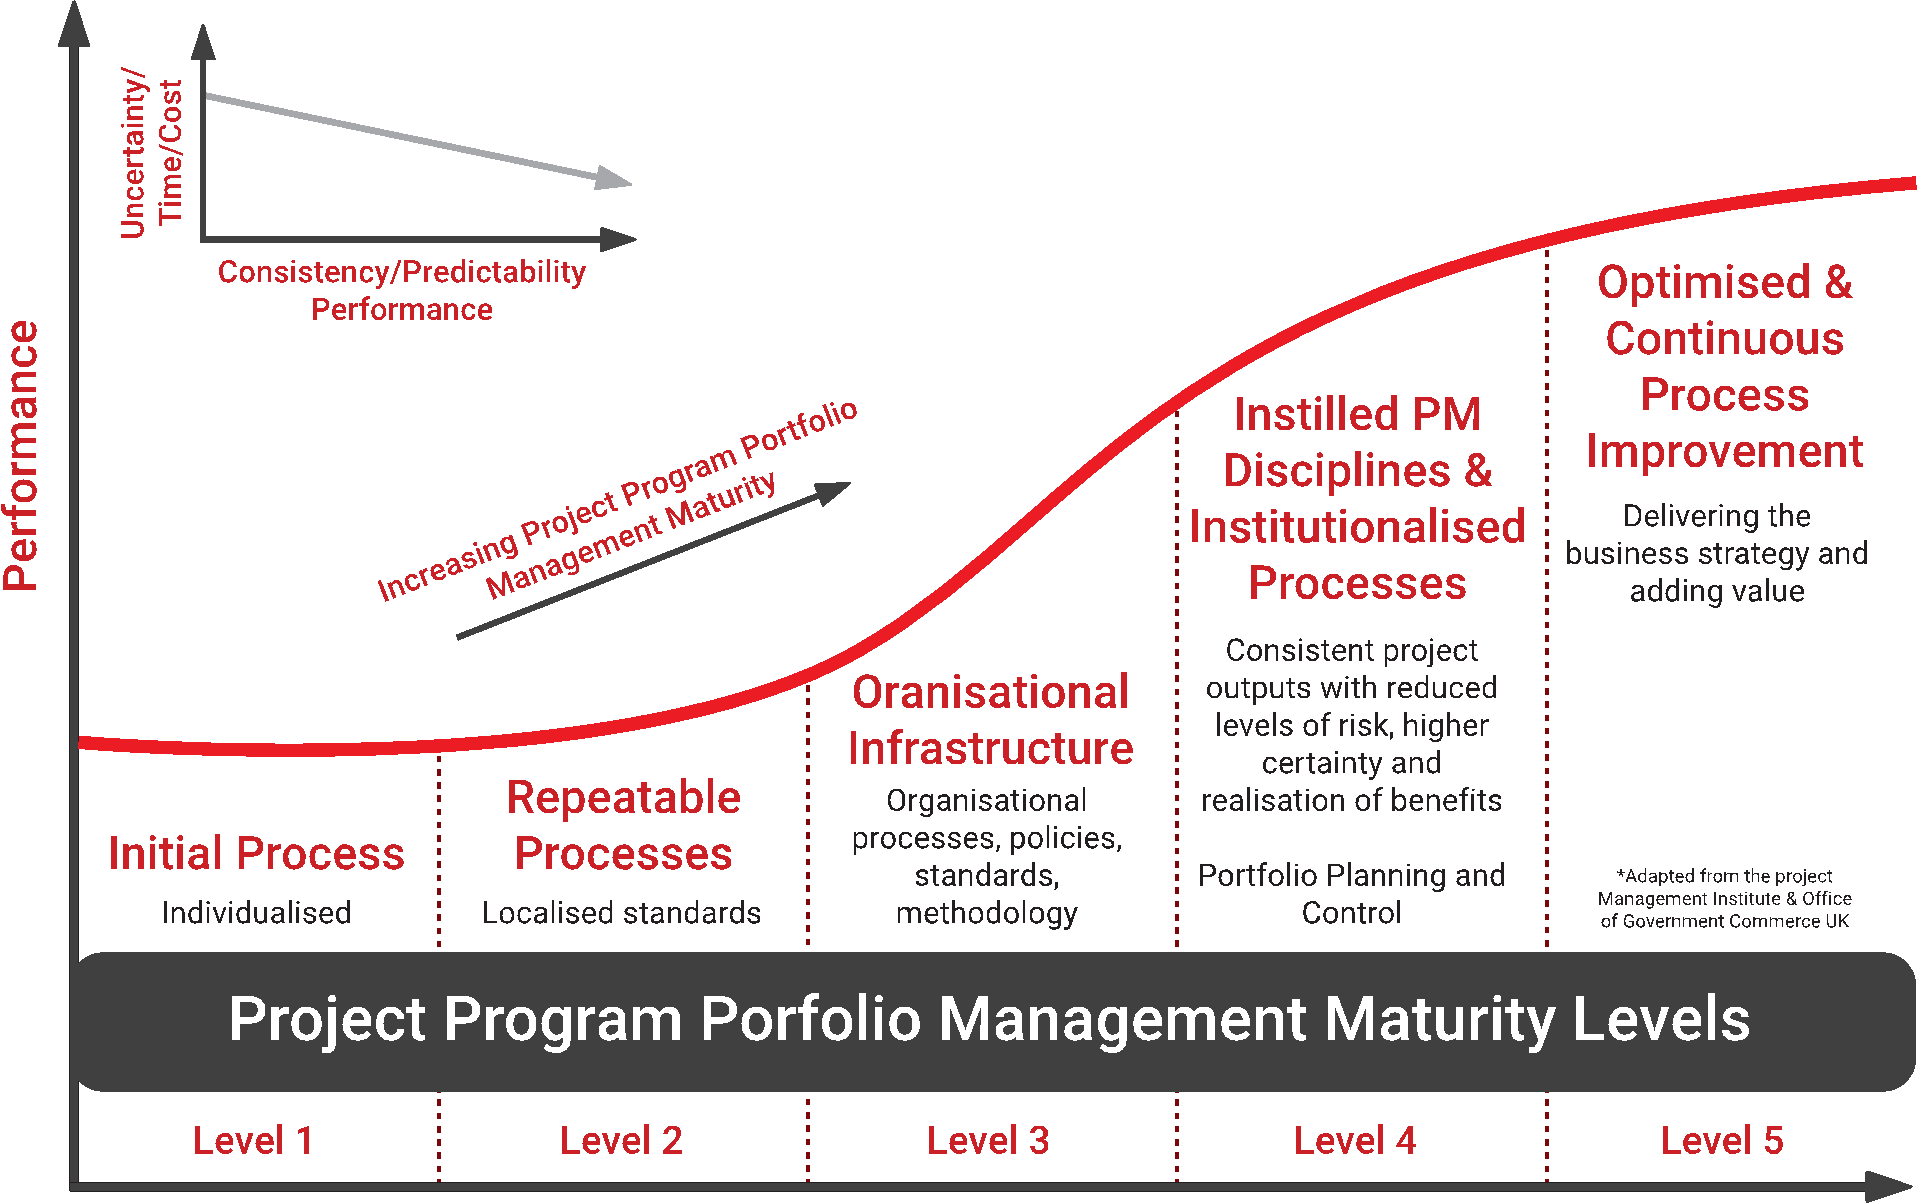 project-program-maturity-levels-john-roose